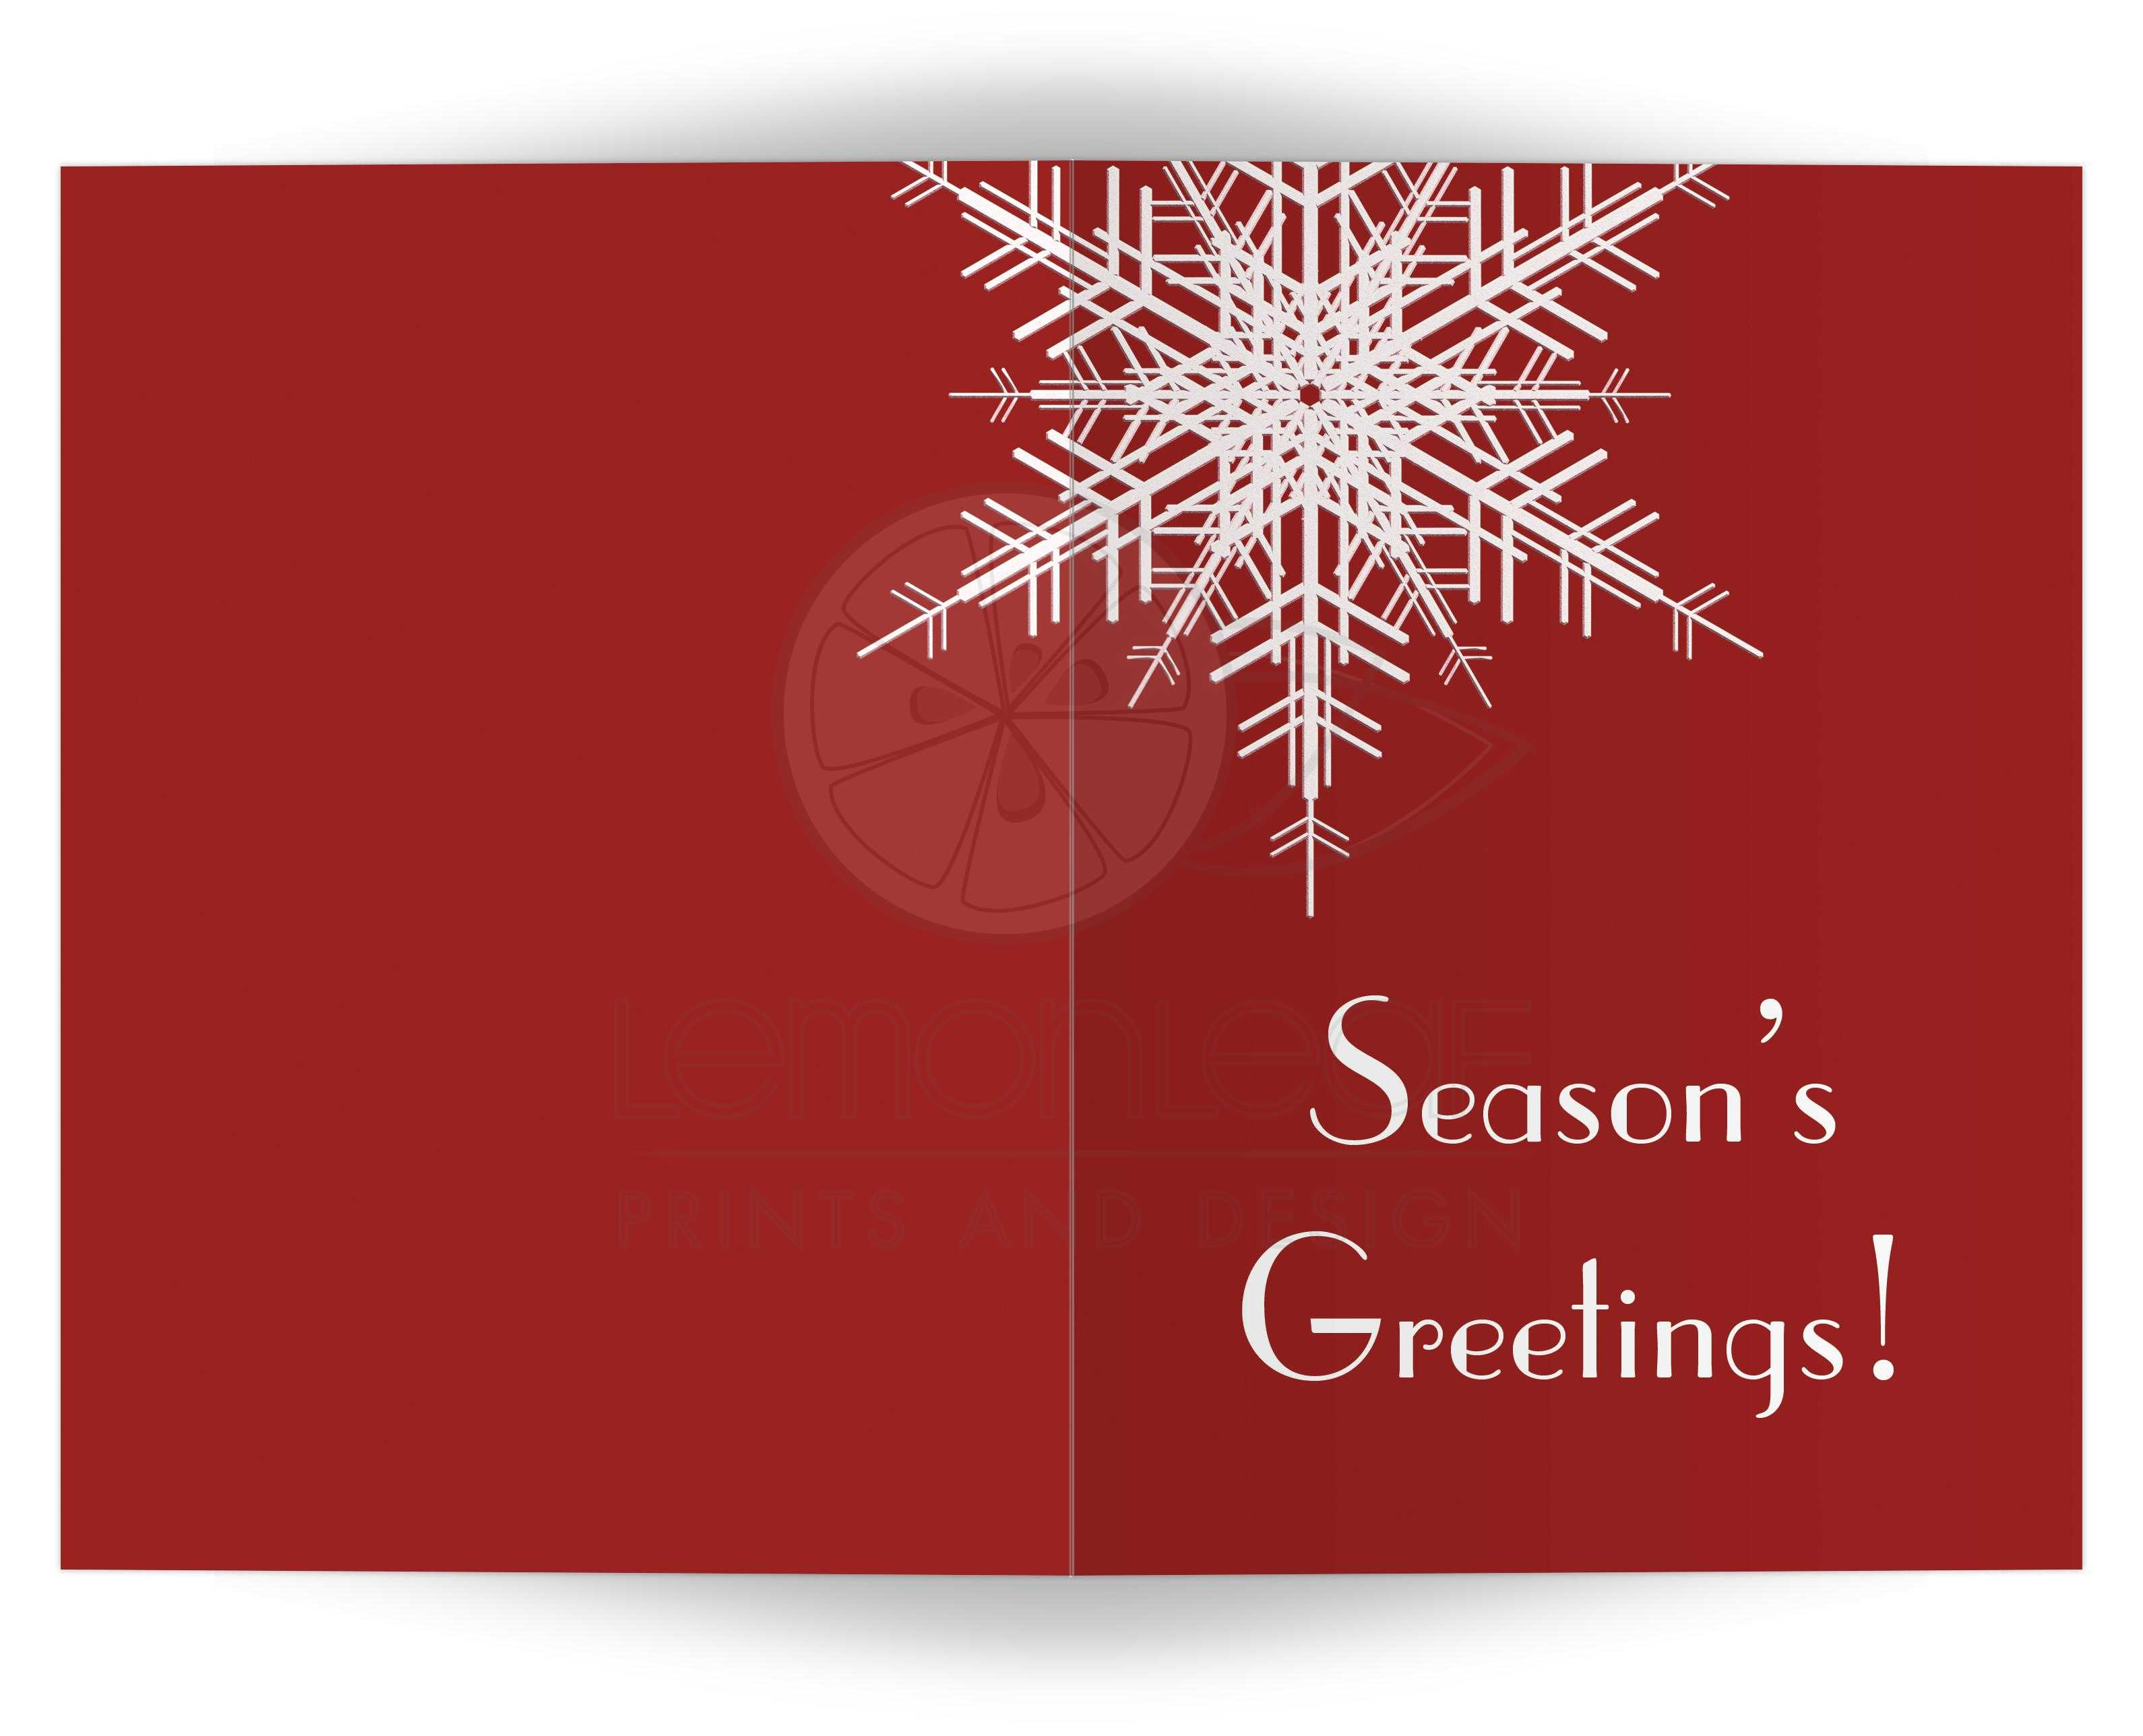 Holiday card seasons greetings snowflake on red 5x7 a large snowflake decorates this non denominational red holiday card m4hsunfo